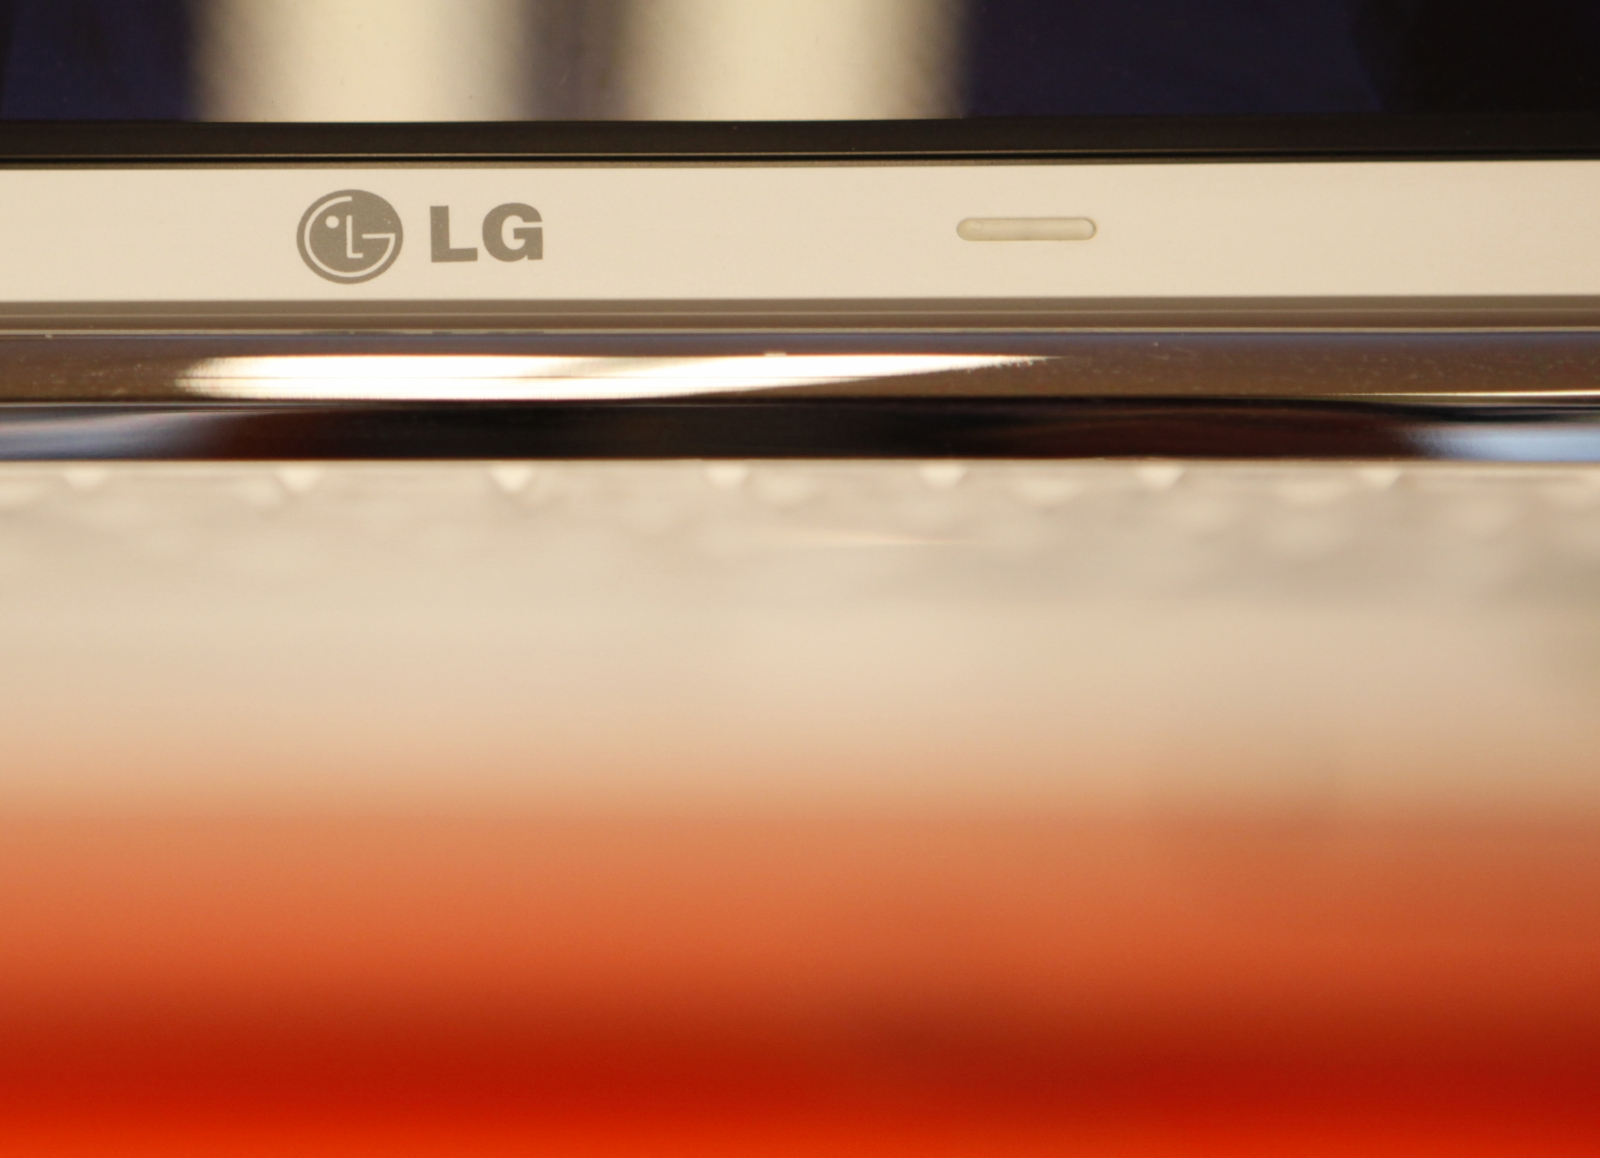 LG V20 to be launched in September